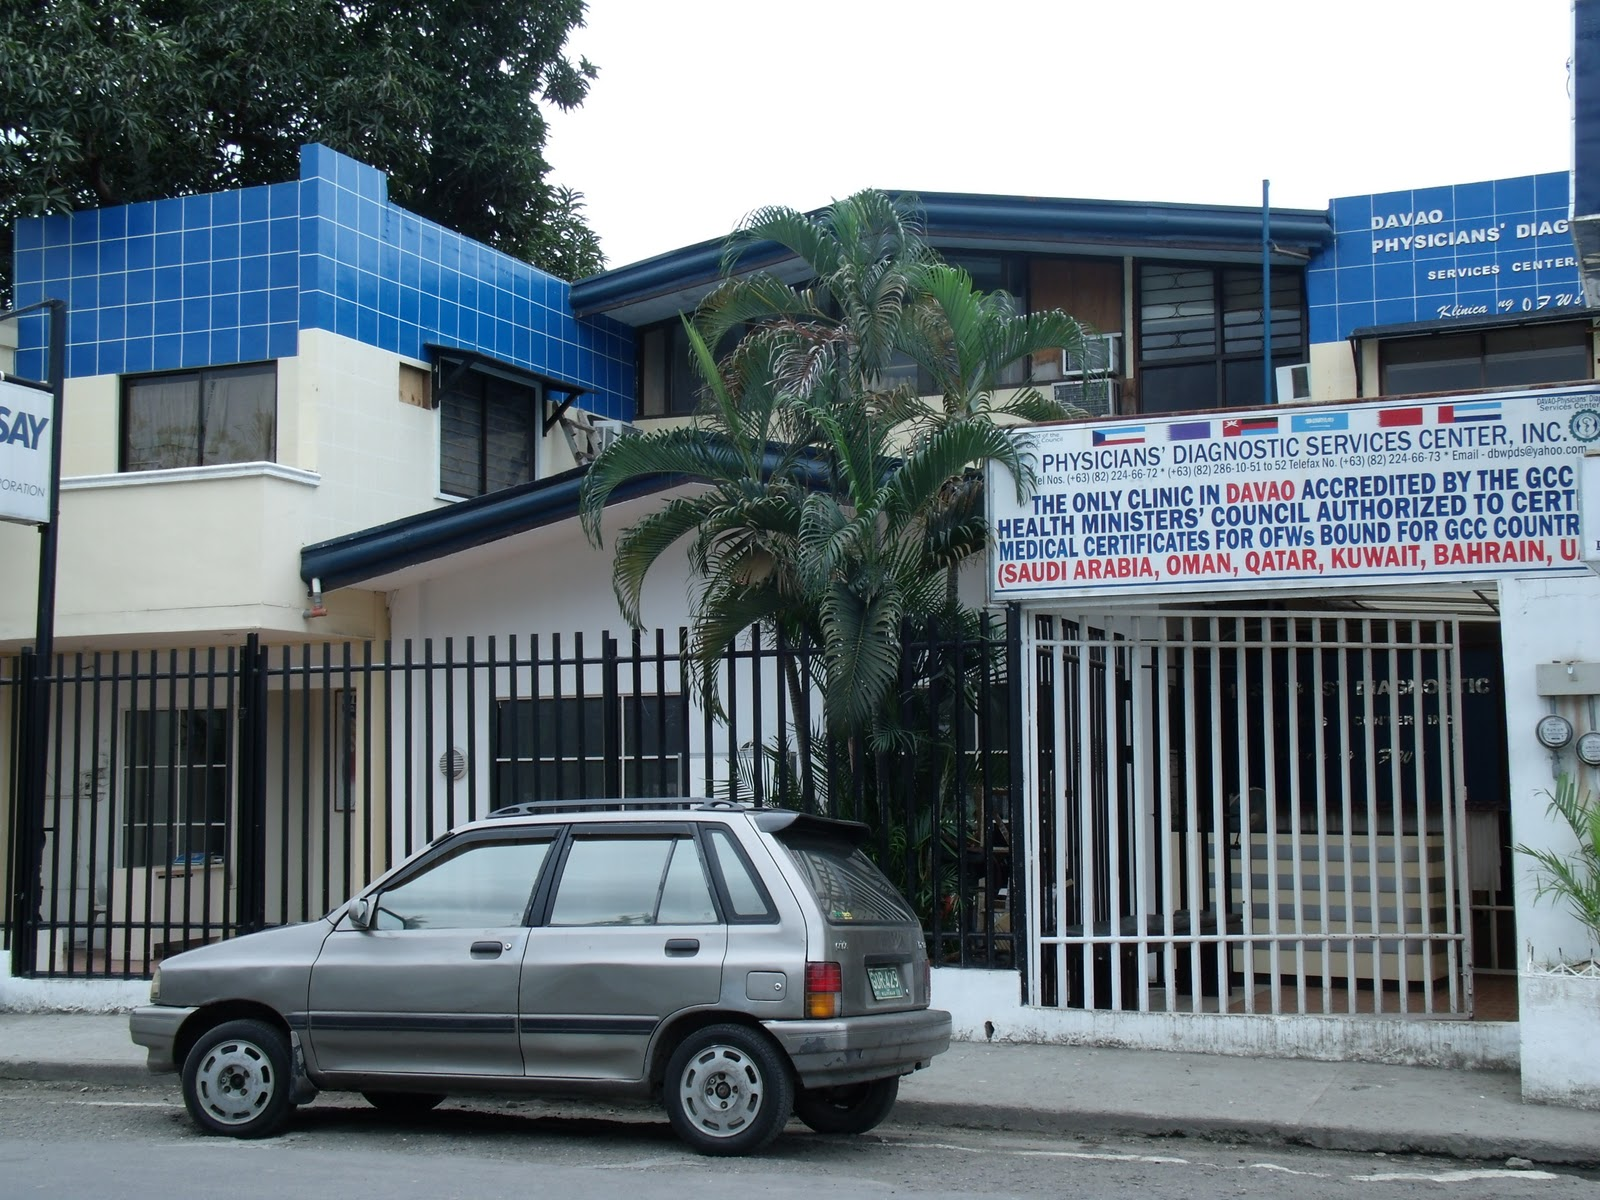 j gerald's journal: GAMCA ACCREDITED CLINIC IN DAVAO CITY